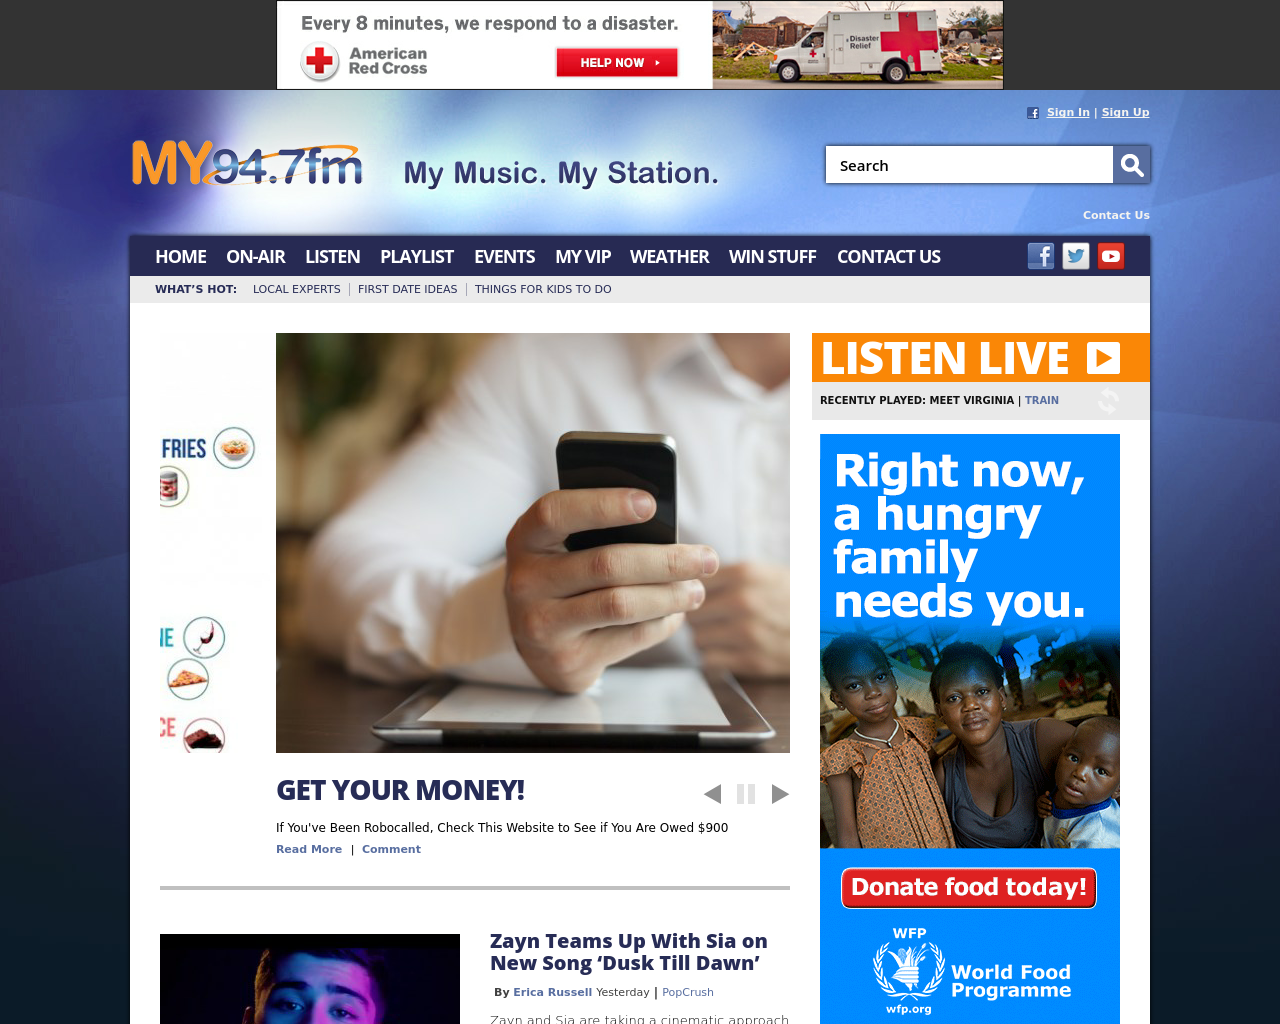 My-94.7fm--My-Music.-My-Station-Advertising-Reviews-Pricing